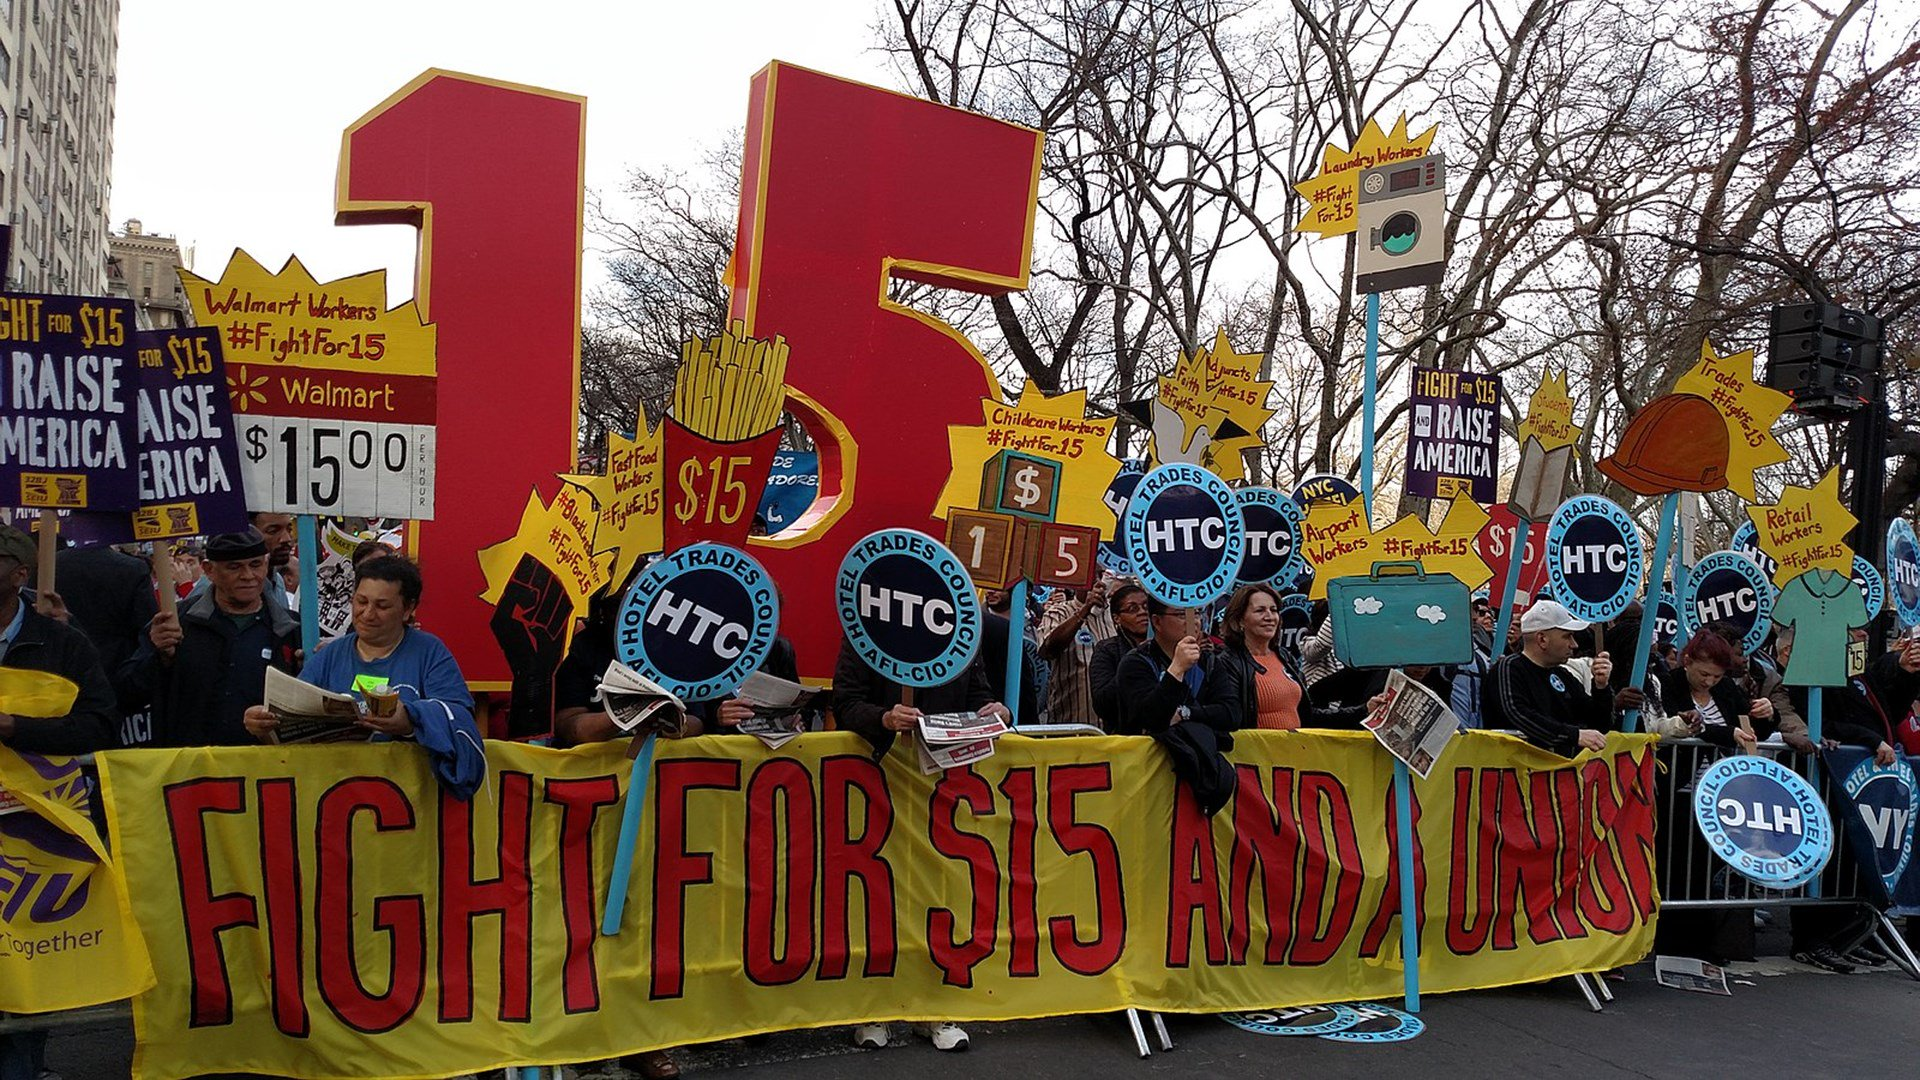 NYC Fast-Food Workers Stunned Some Are Being Fired after $15 Minimum Wage Hike